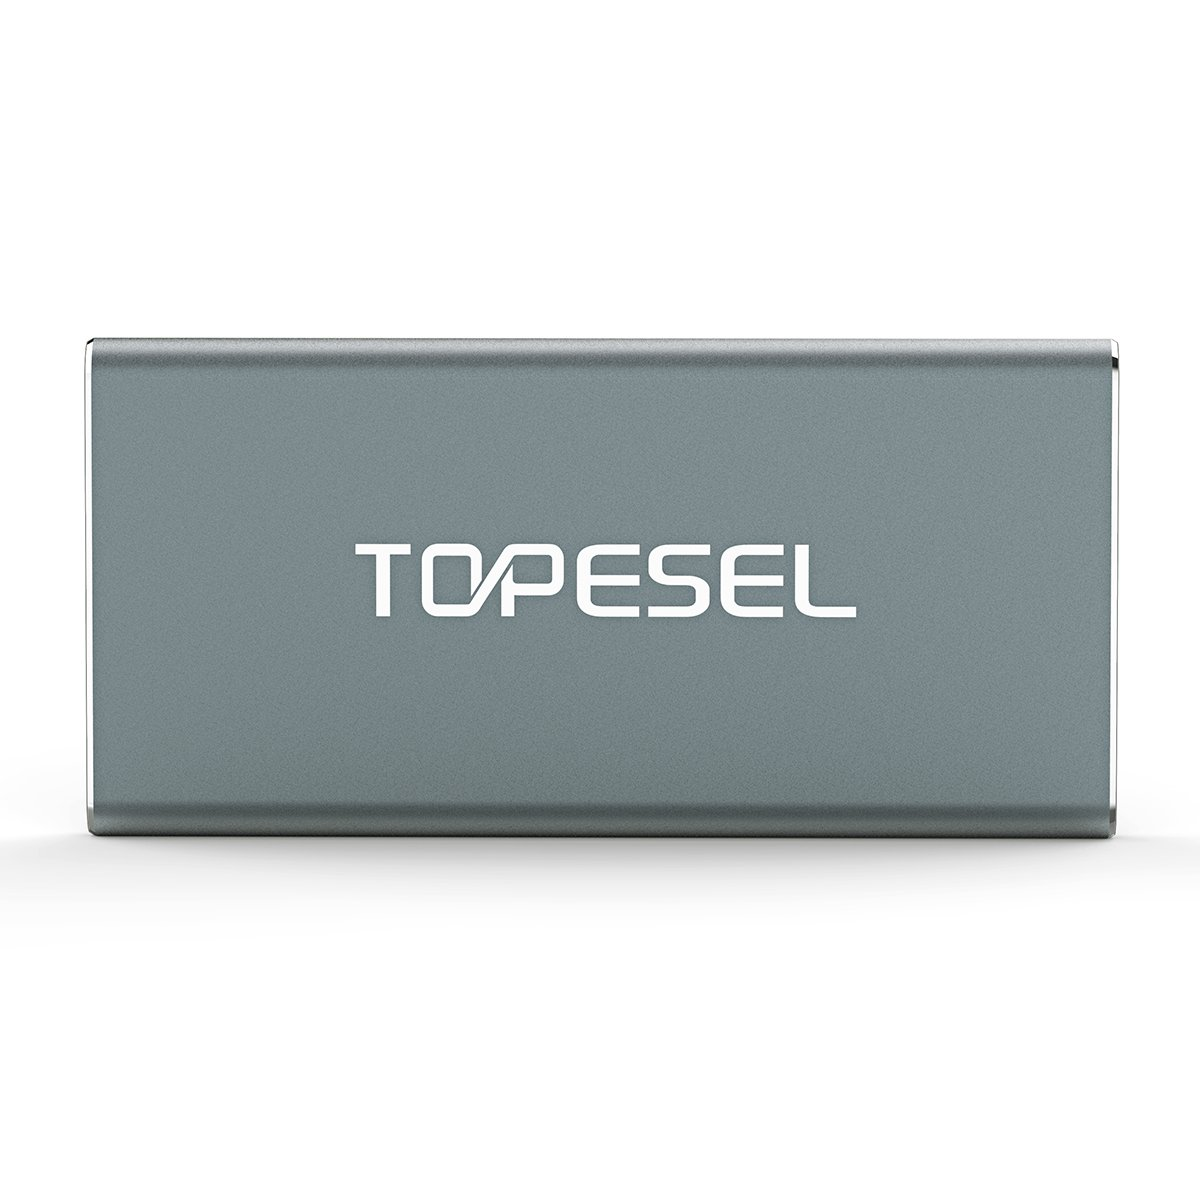 TOPESEL 60GB USB 3.0 Portable SSD High Read/Write Speed up to 300Mbps/420Mbps Aluminum Ultra Slim External Solid State Drive, Grey